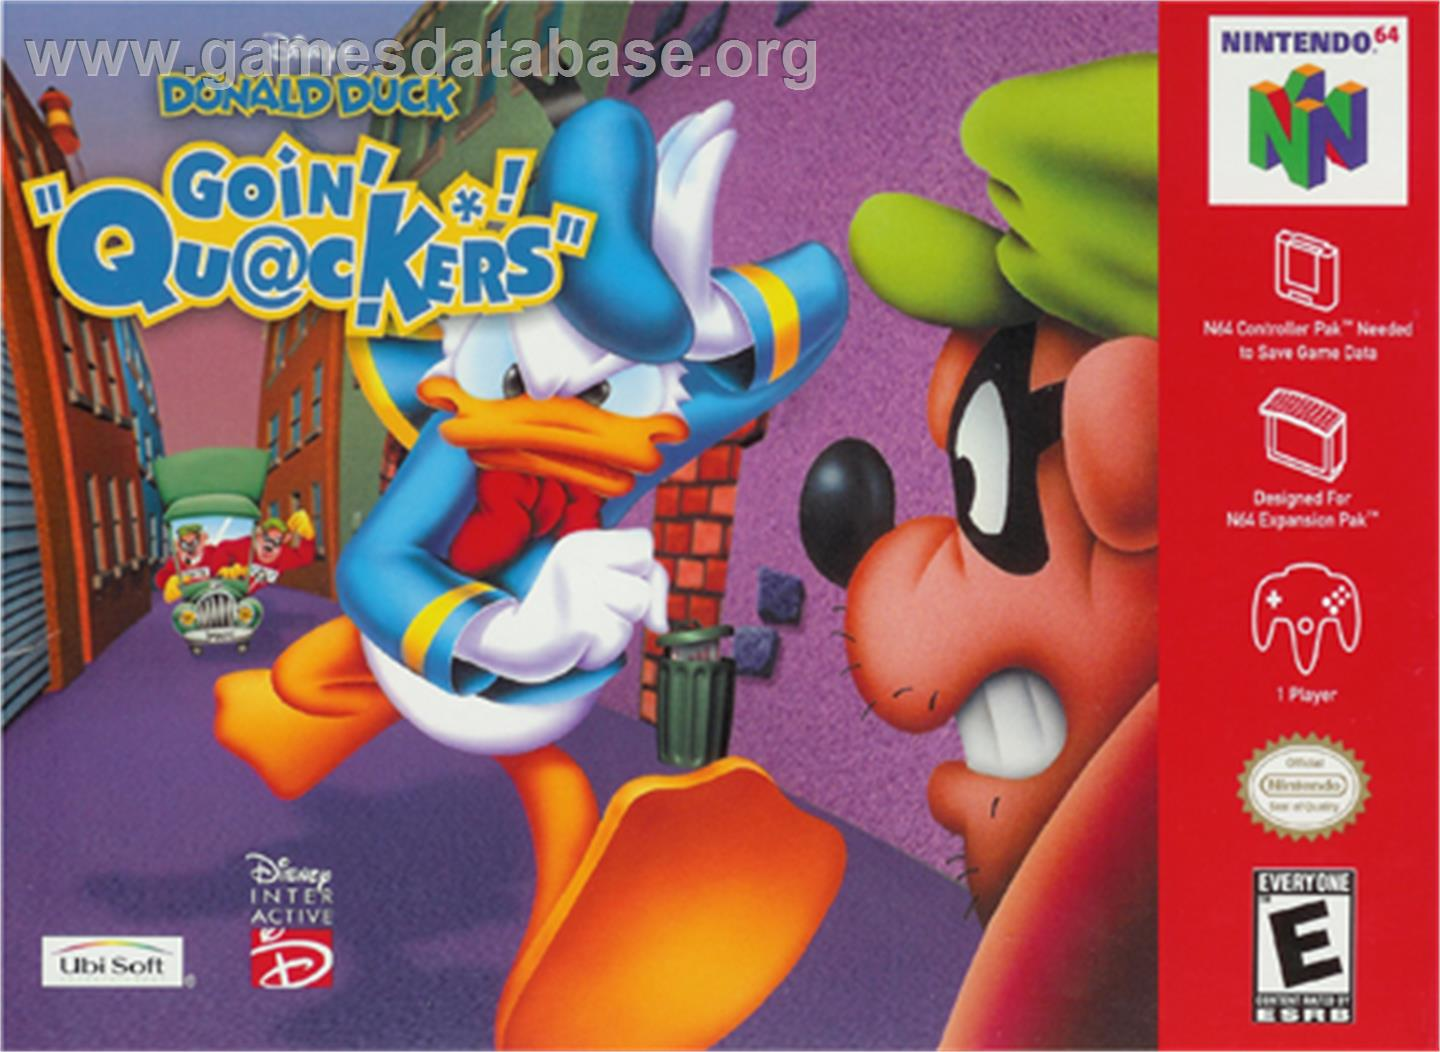 donald duck games